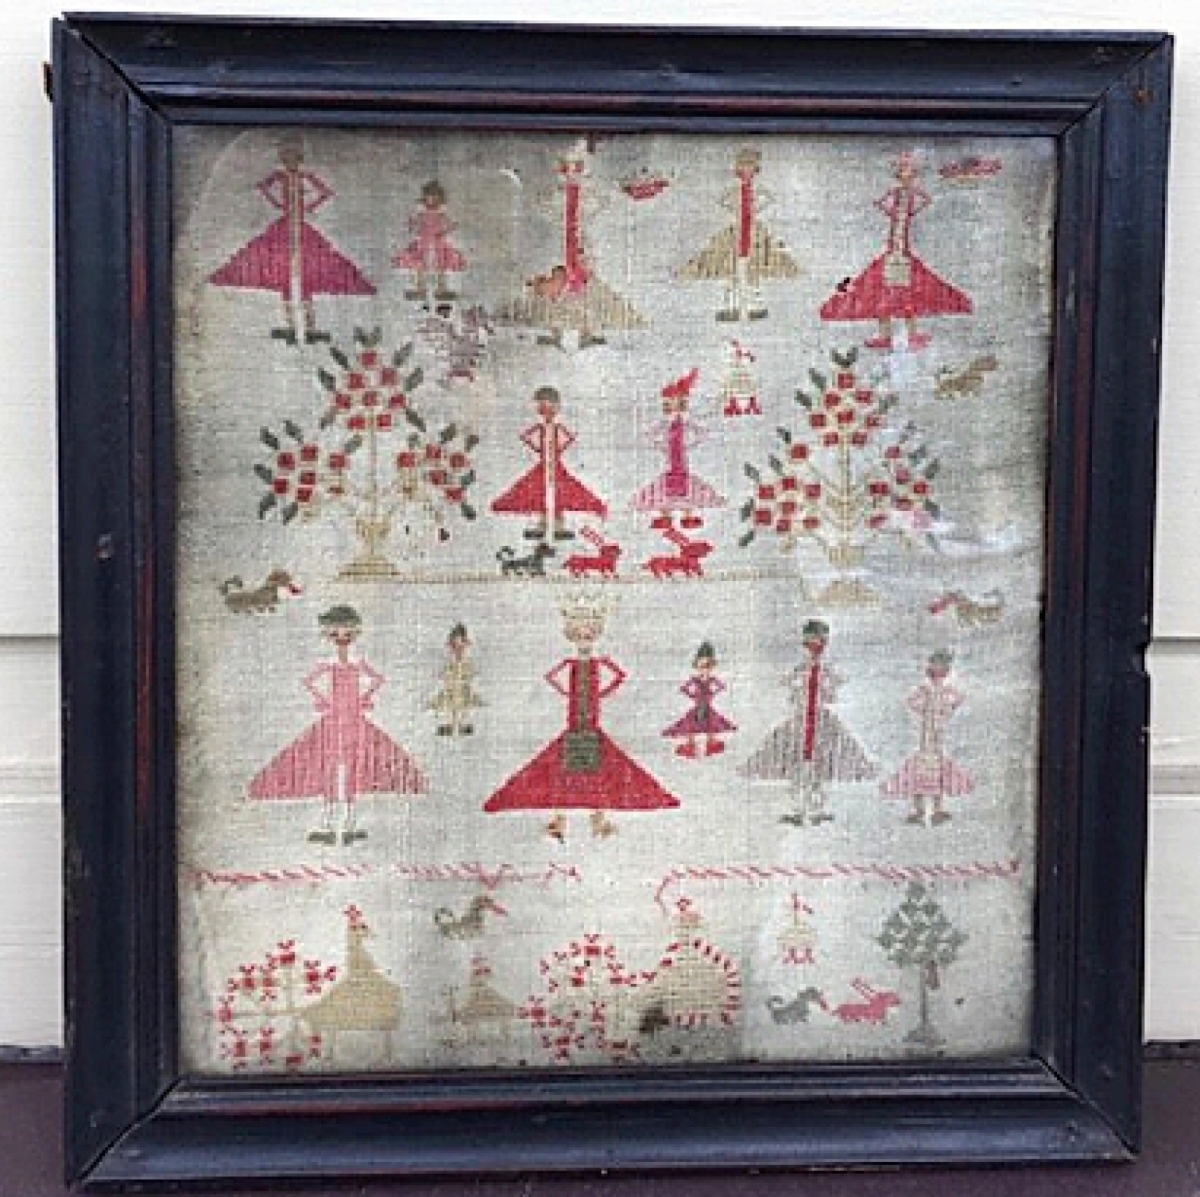 There were few samplers in the sale but this example, unattributed but dating to the early 1800s, depicted girls in red dresses with animals and trees on linen. Barb Lemme and Ginny Larsen, Sign of the Whale Antiques, Glen Ellyn, Ill., sold it along with 11 other items.